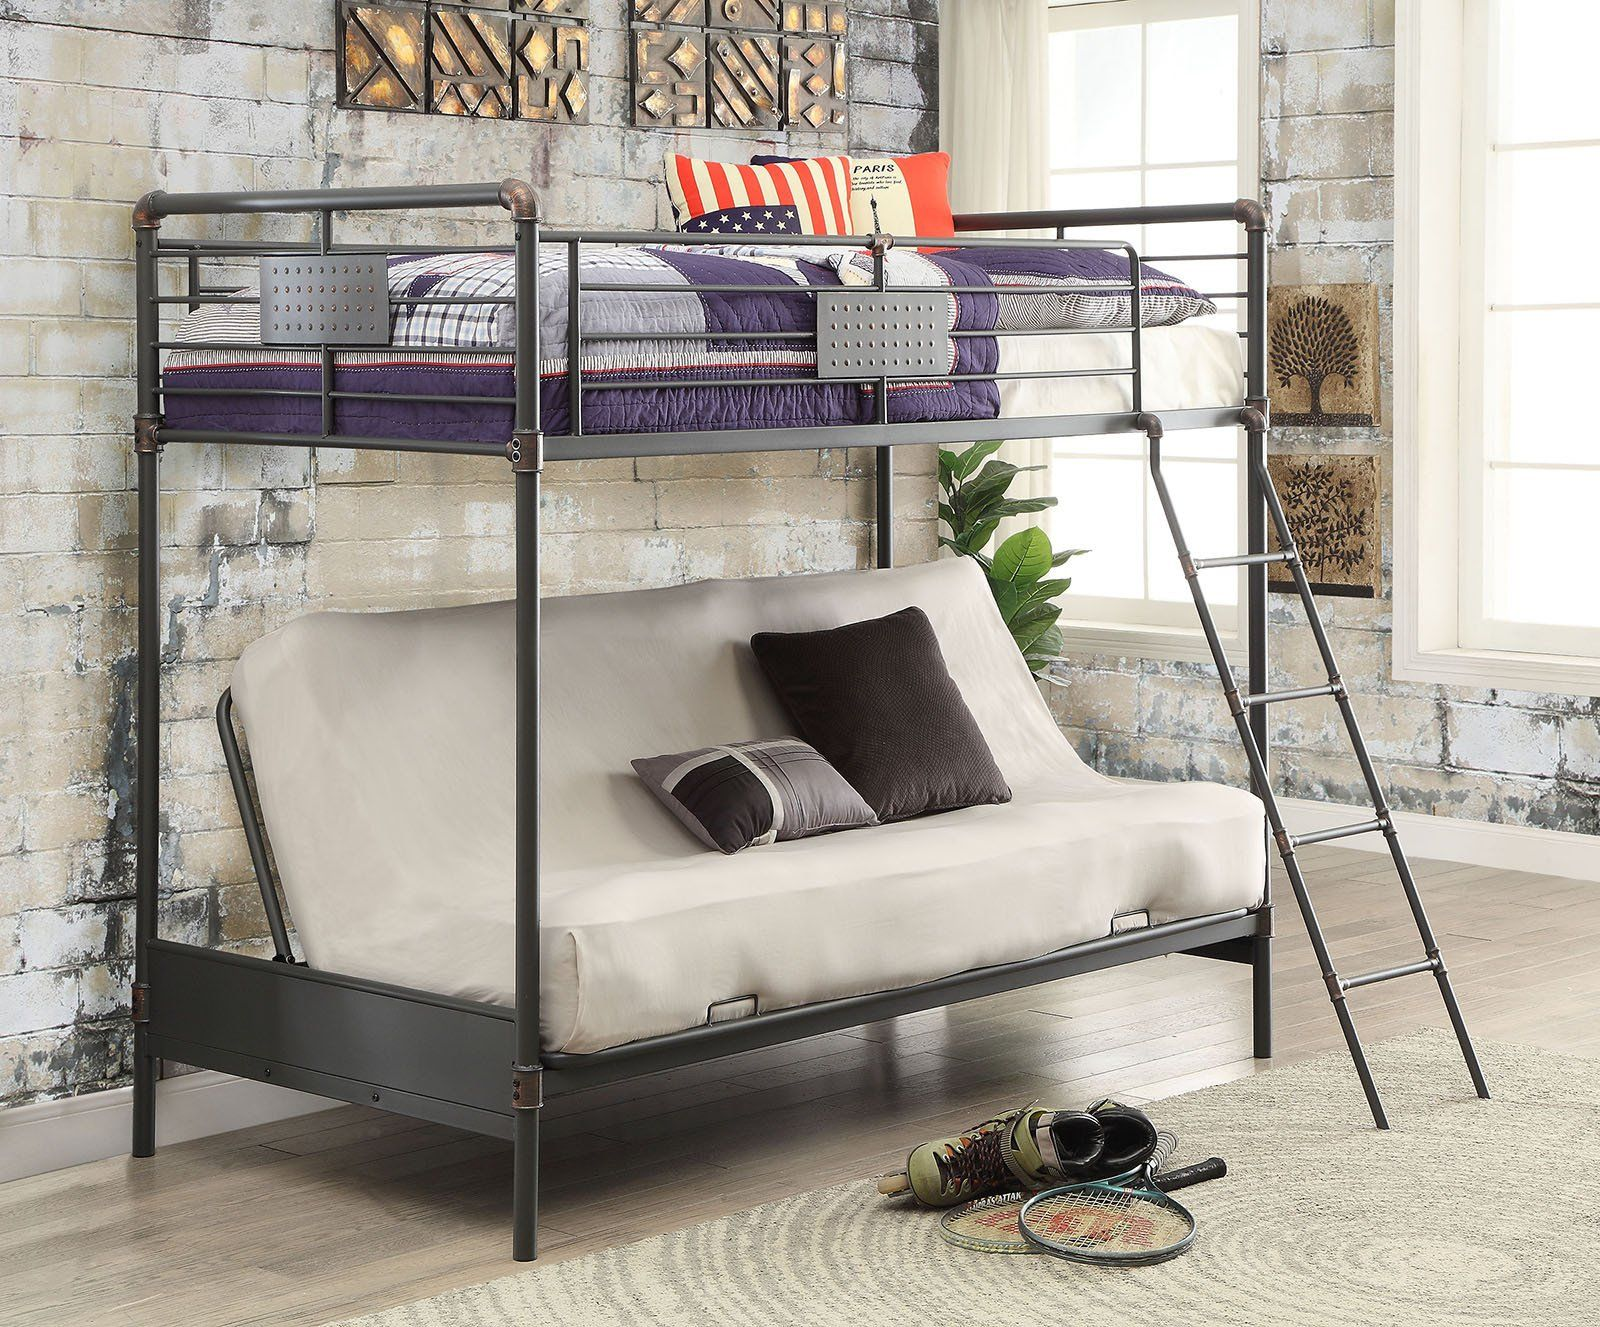 living phyllo signature black sofas product to sofa click futons bed futon base image item furniture american room sleeper change seating